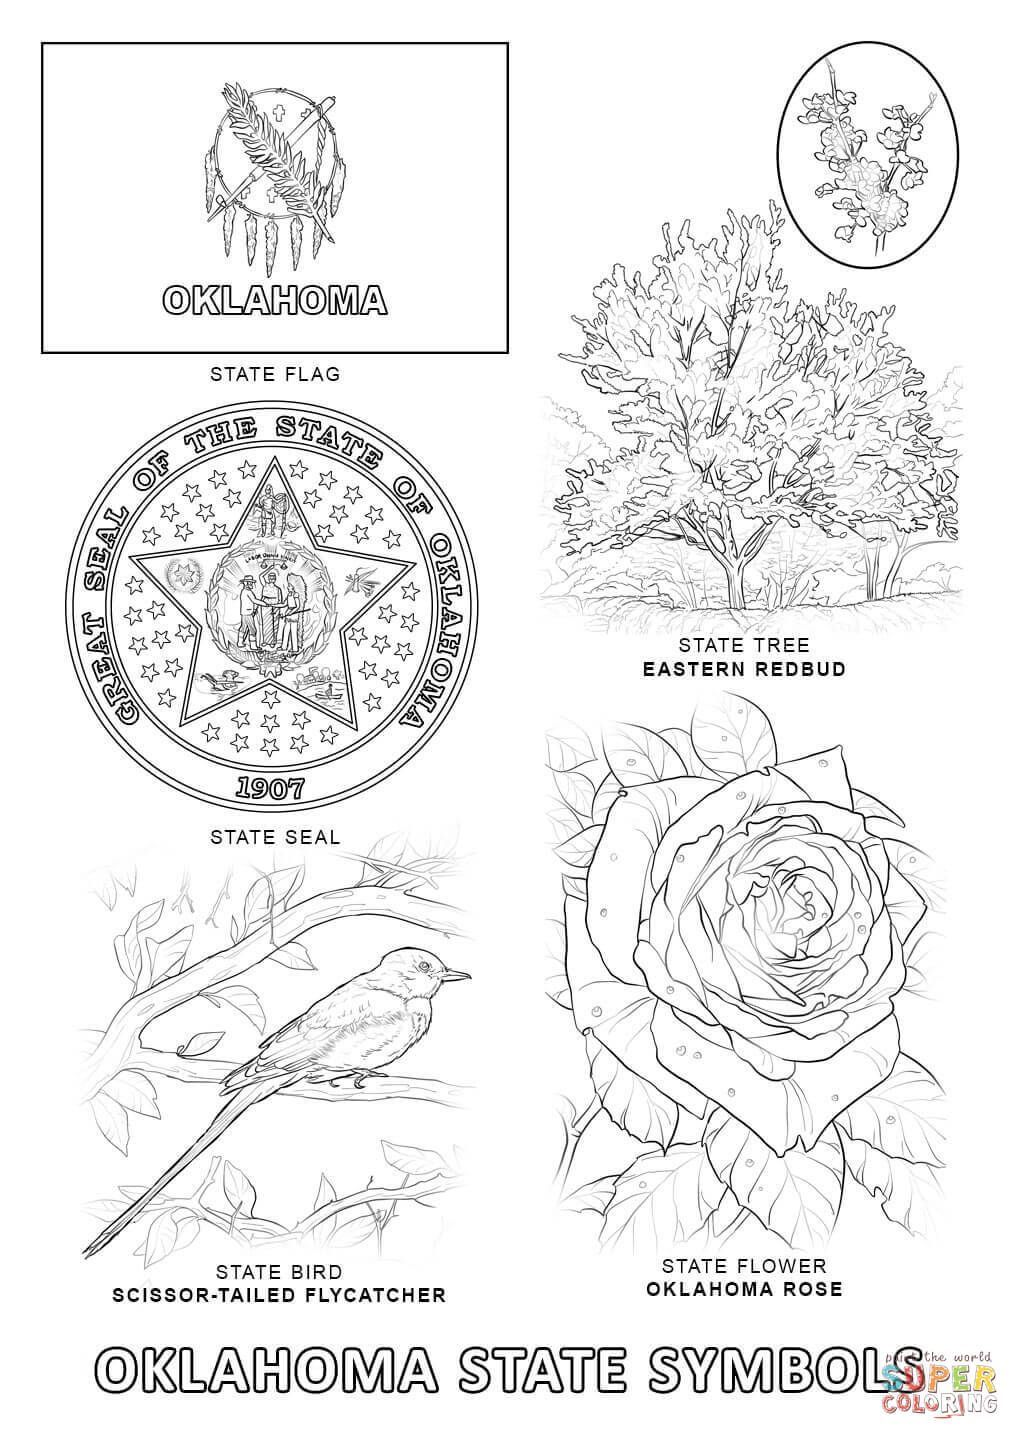 Oklahoma State Symbols Coloring Page Crossing North Bird Coloring Pages Coloring Pages Flag Coloring Pages